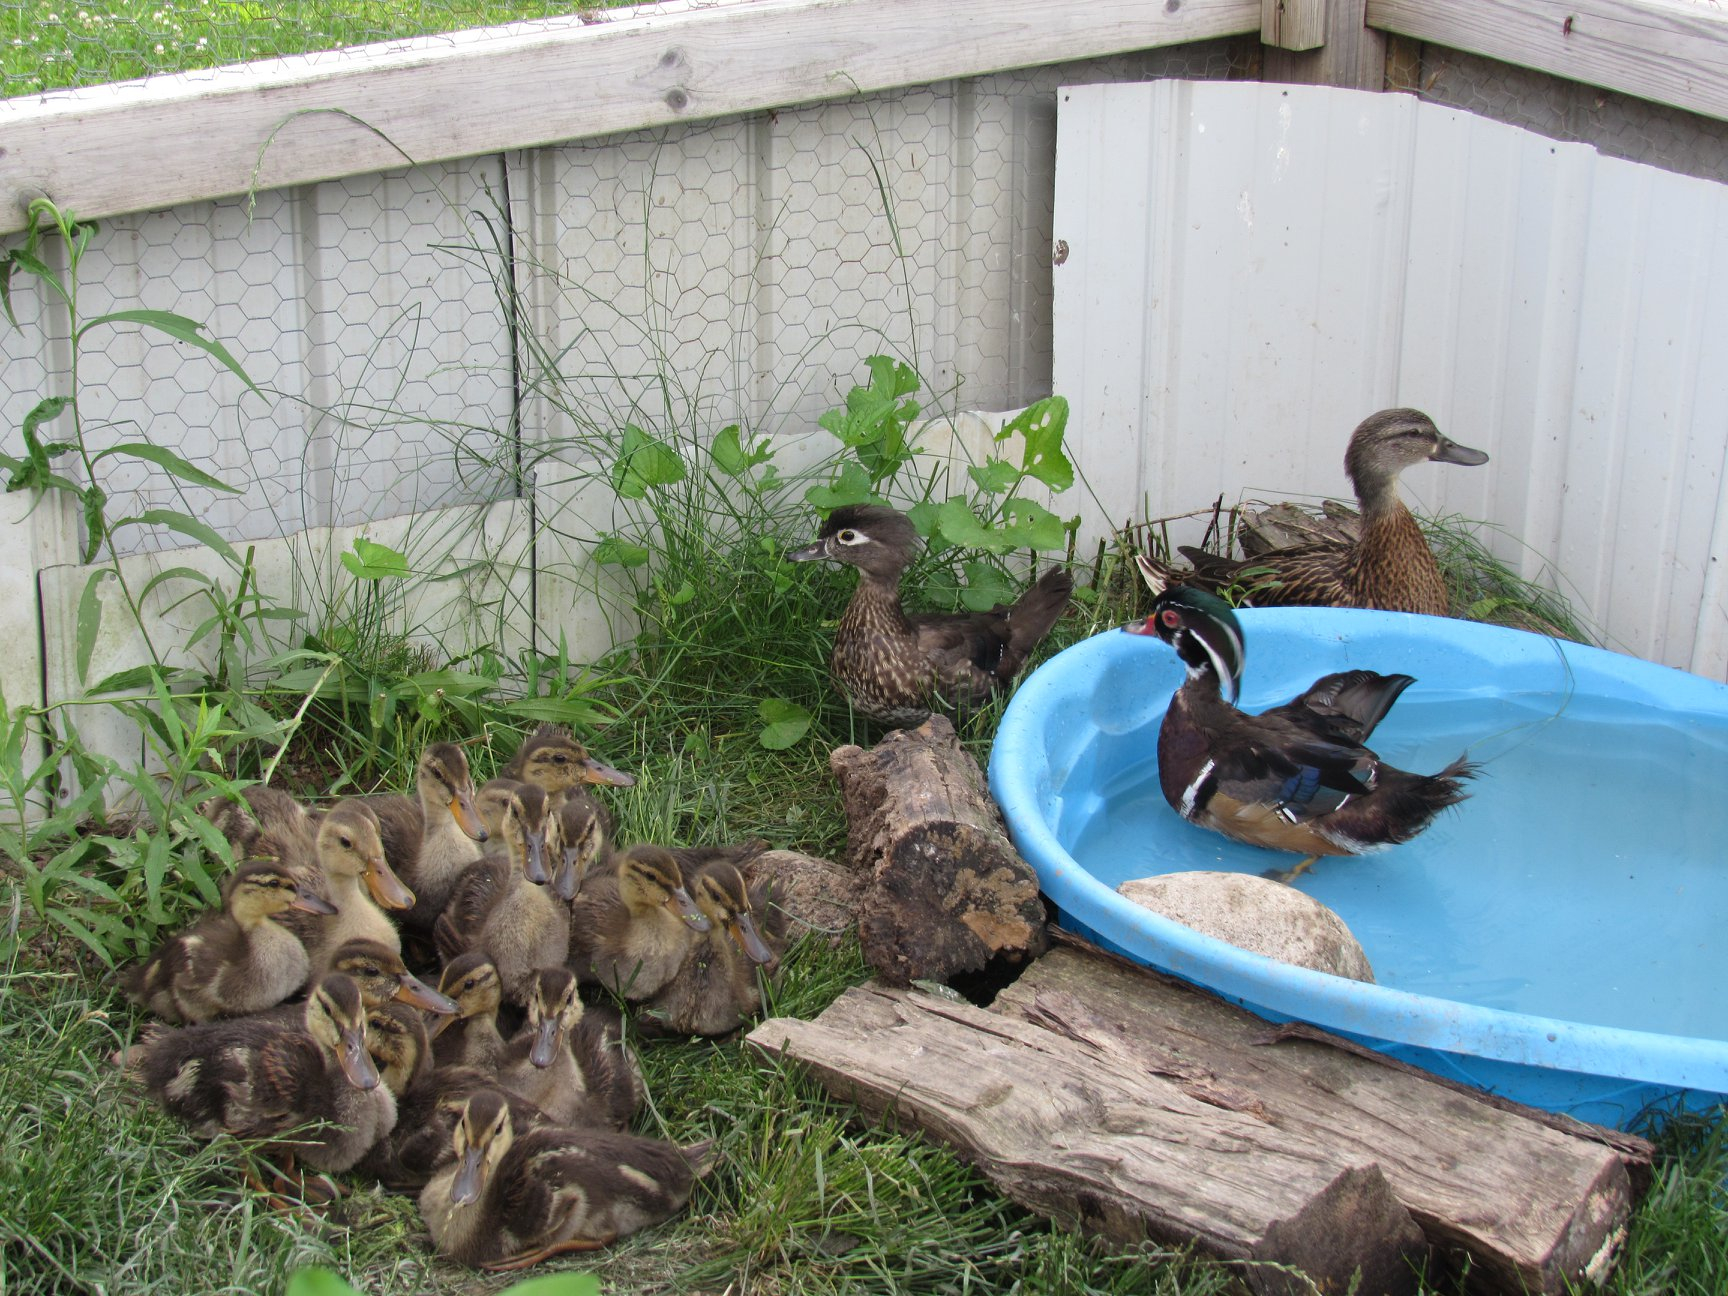 Now outside with the foster parents our oldest group of ducklings is acclimating to the outside temperatures and weather.